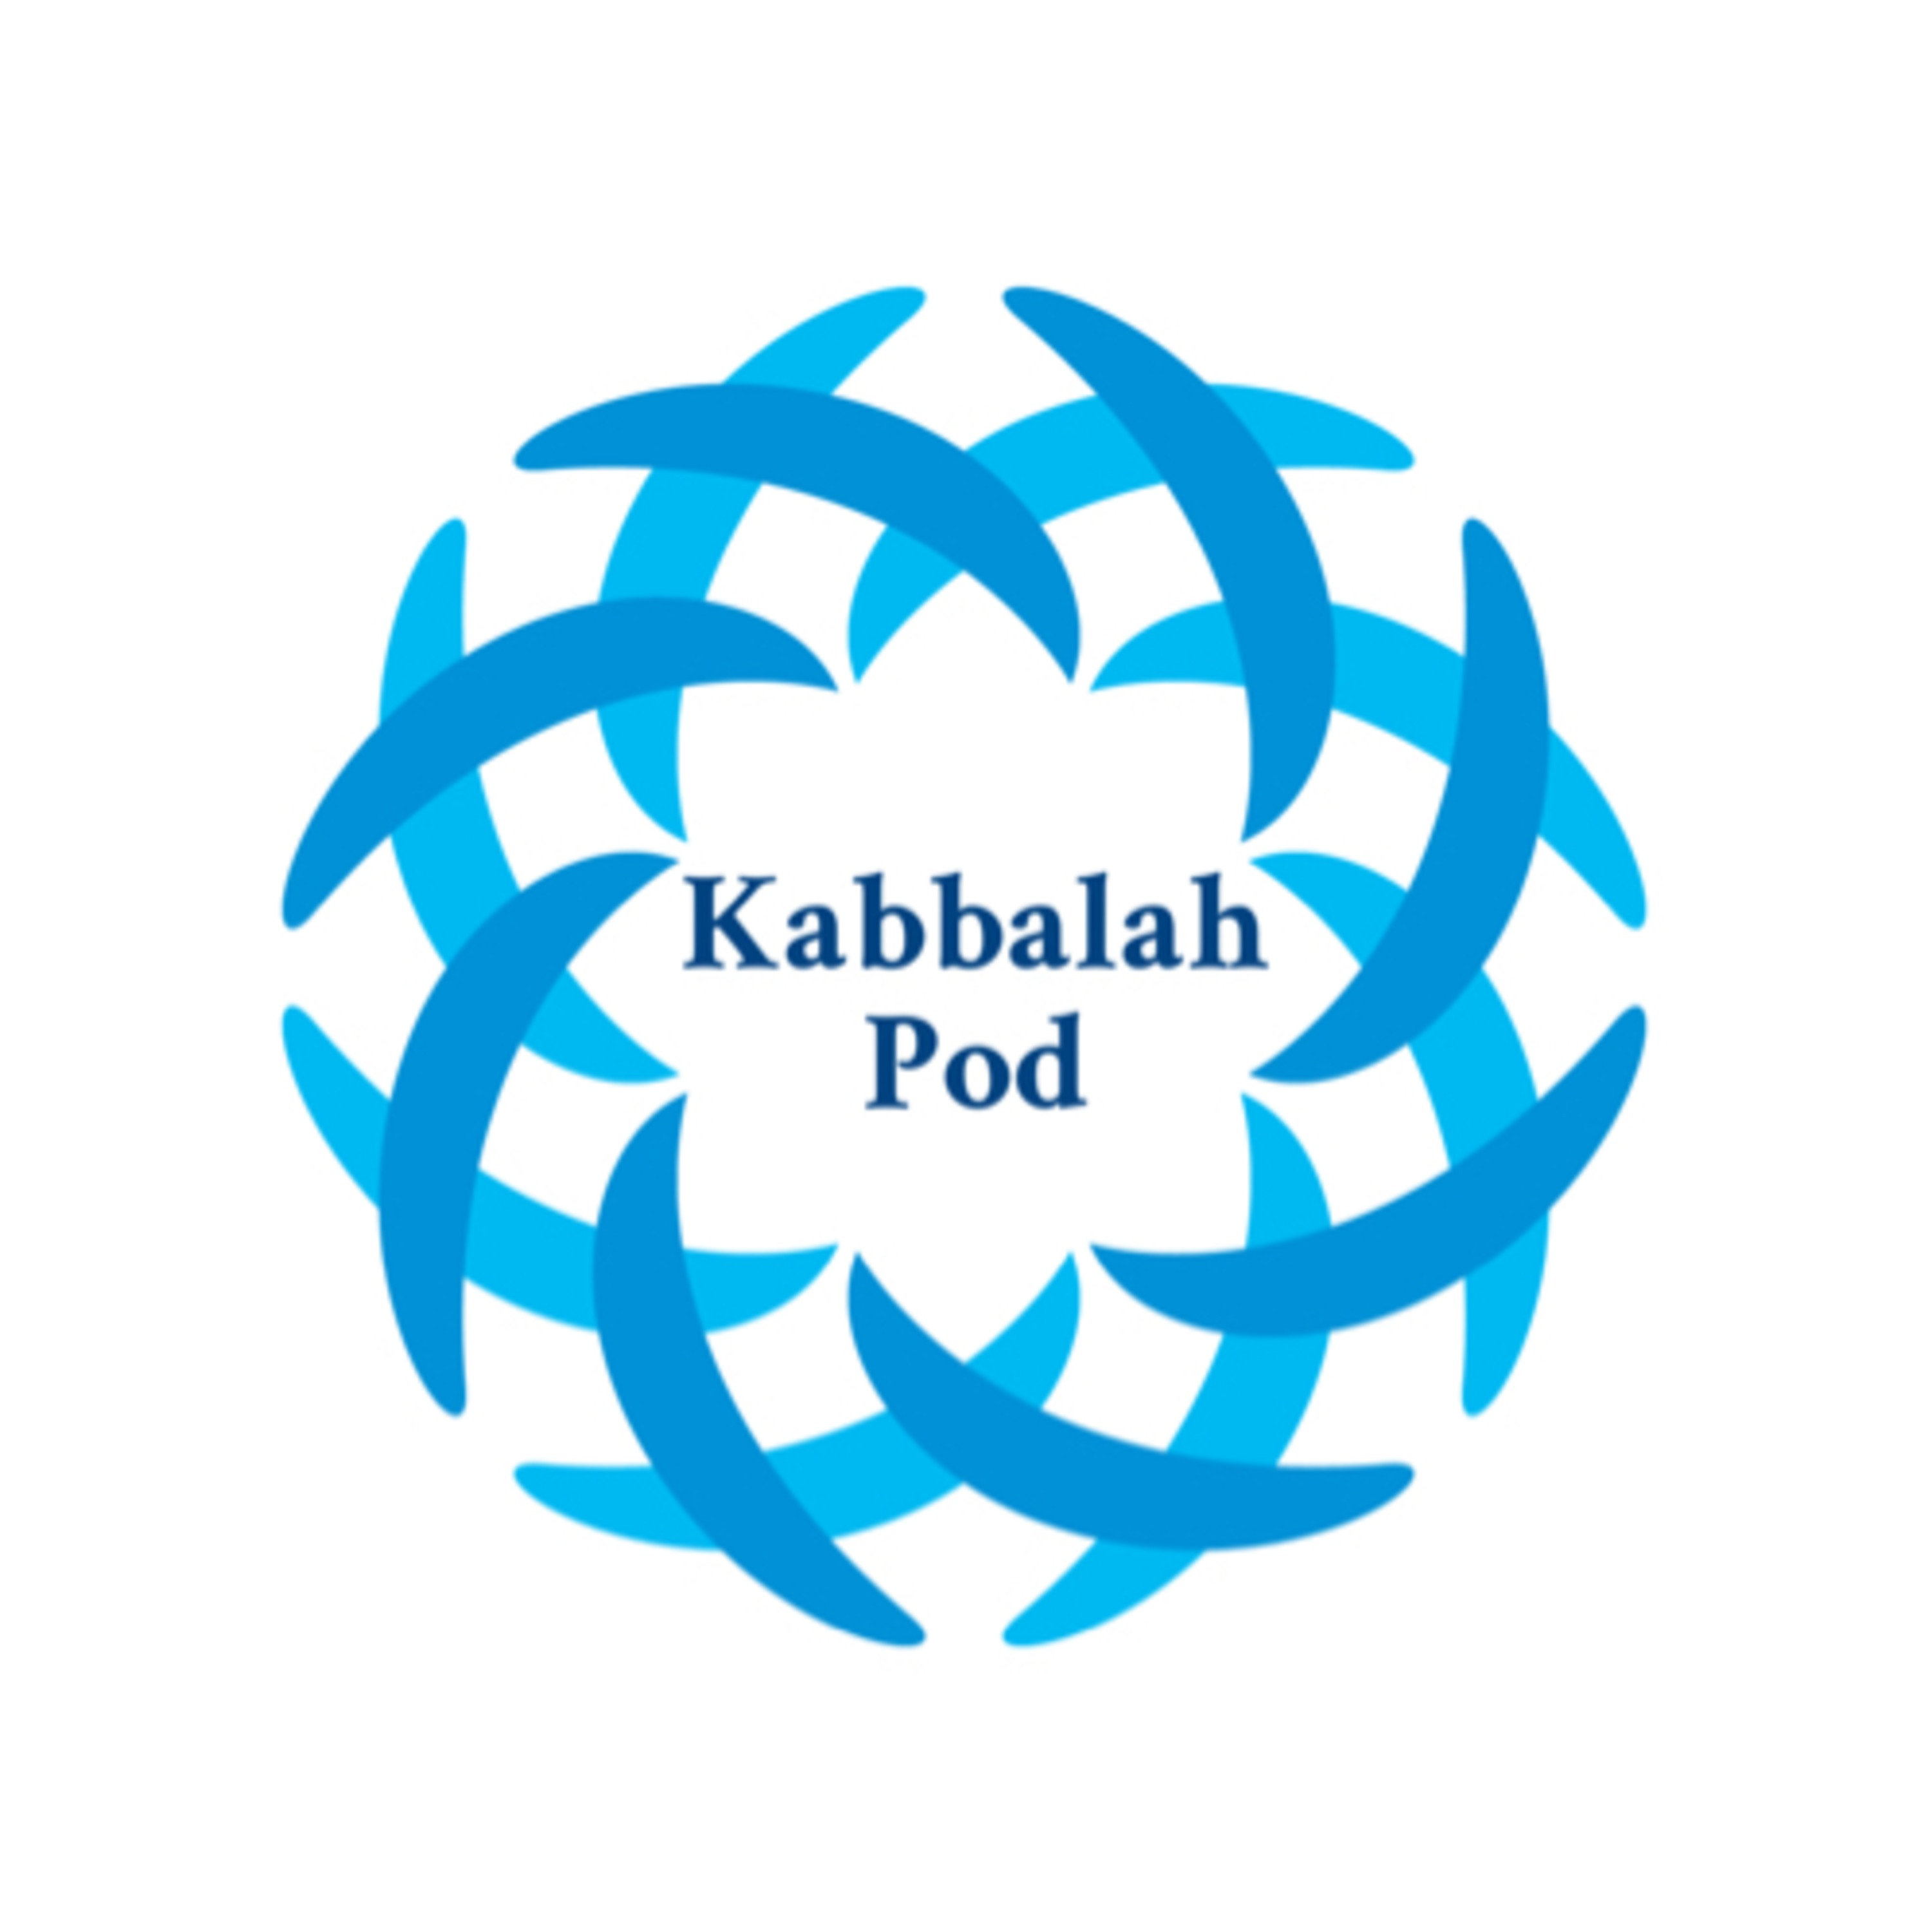 Episode 81: Not Practical Kabbalah